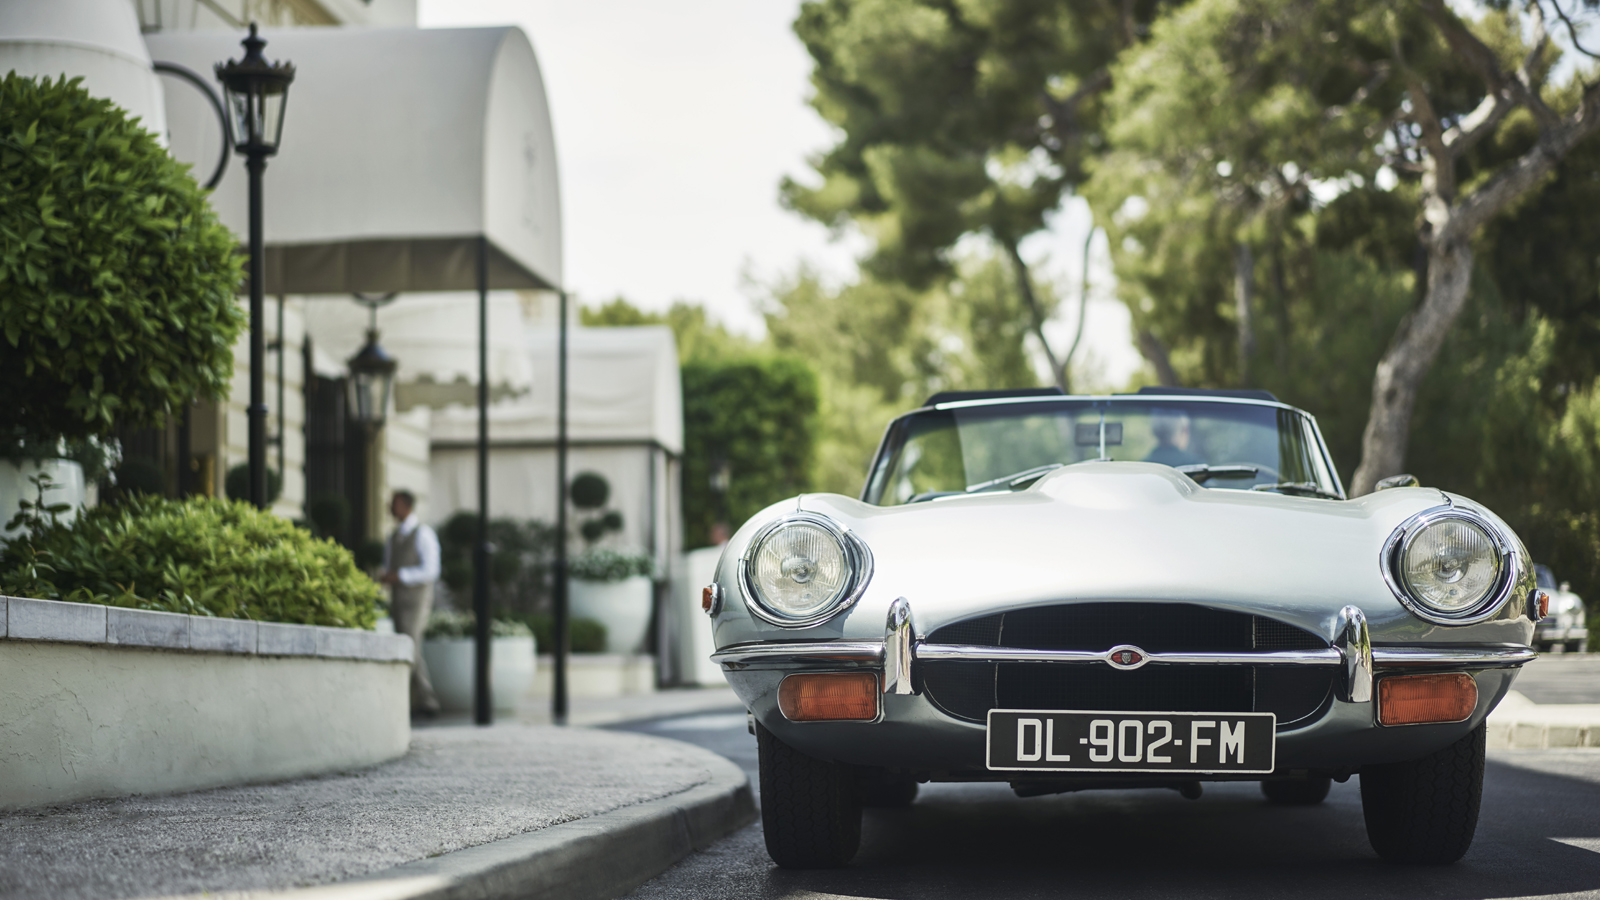 Photo of EXPERIENCE THE GLAMOUR OF THE FRENCH RIVIERA BEHIND THE WHEEL OF AN ICONIC CLASSIC OR SUPER CAR